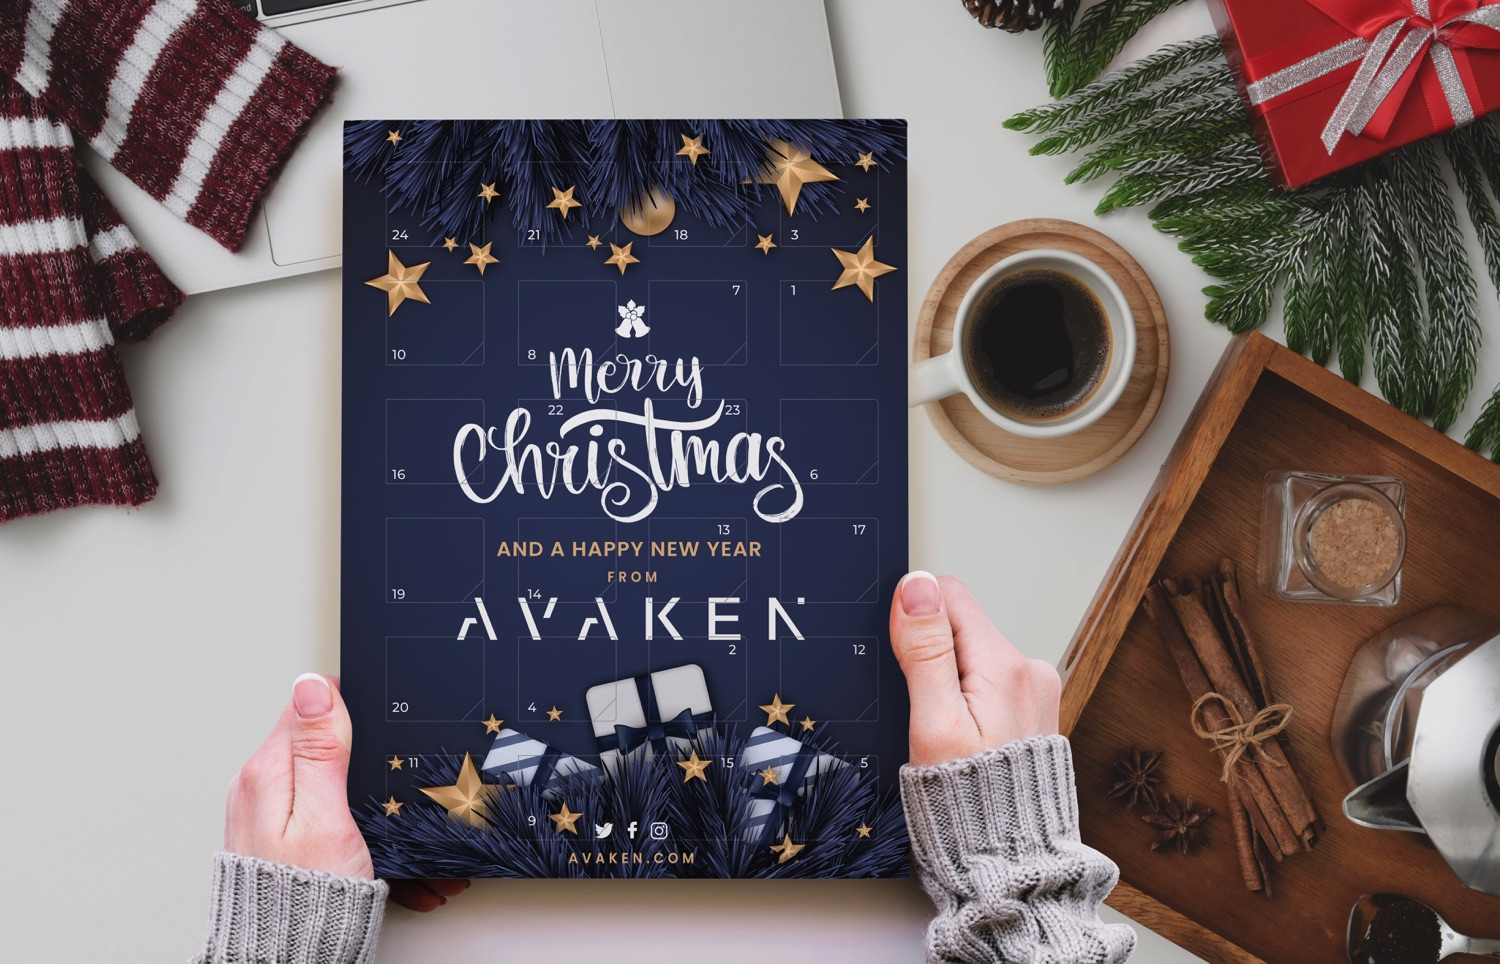 Advent calendars – how to make the most of them